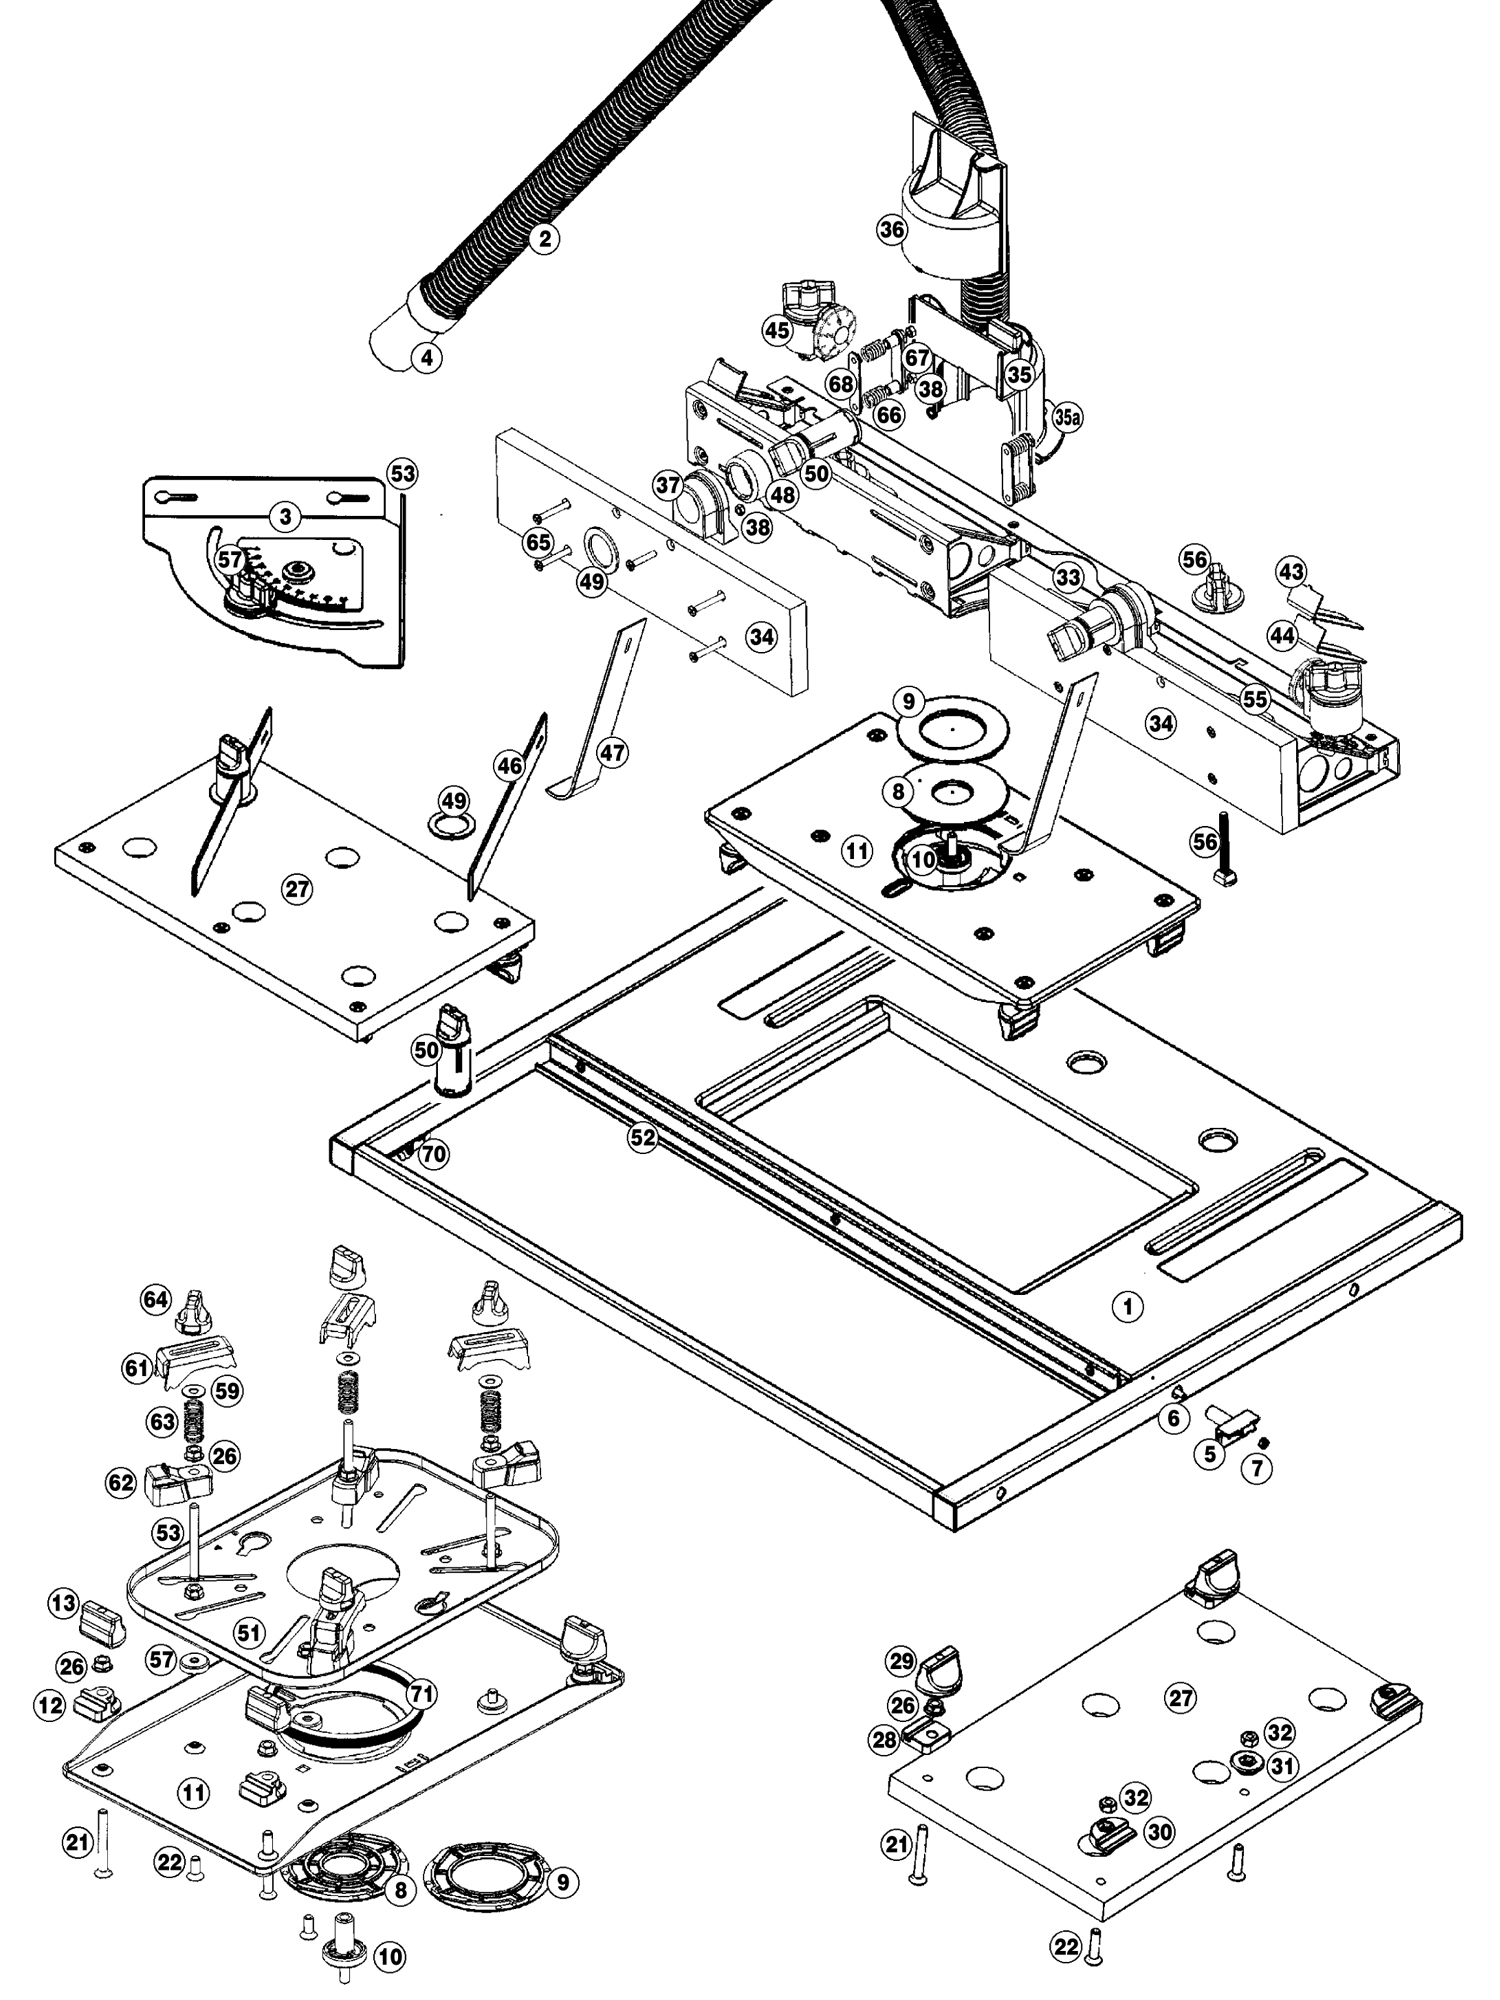 Tool spares online precision router table view schematic diagram triton precision router table keyboard keysfo Image collections